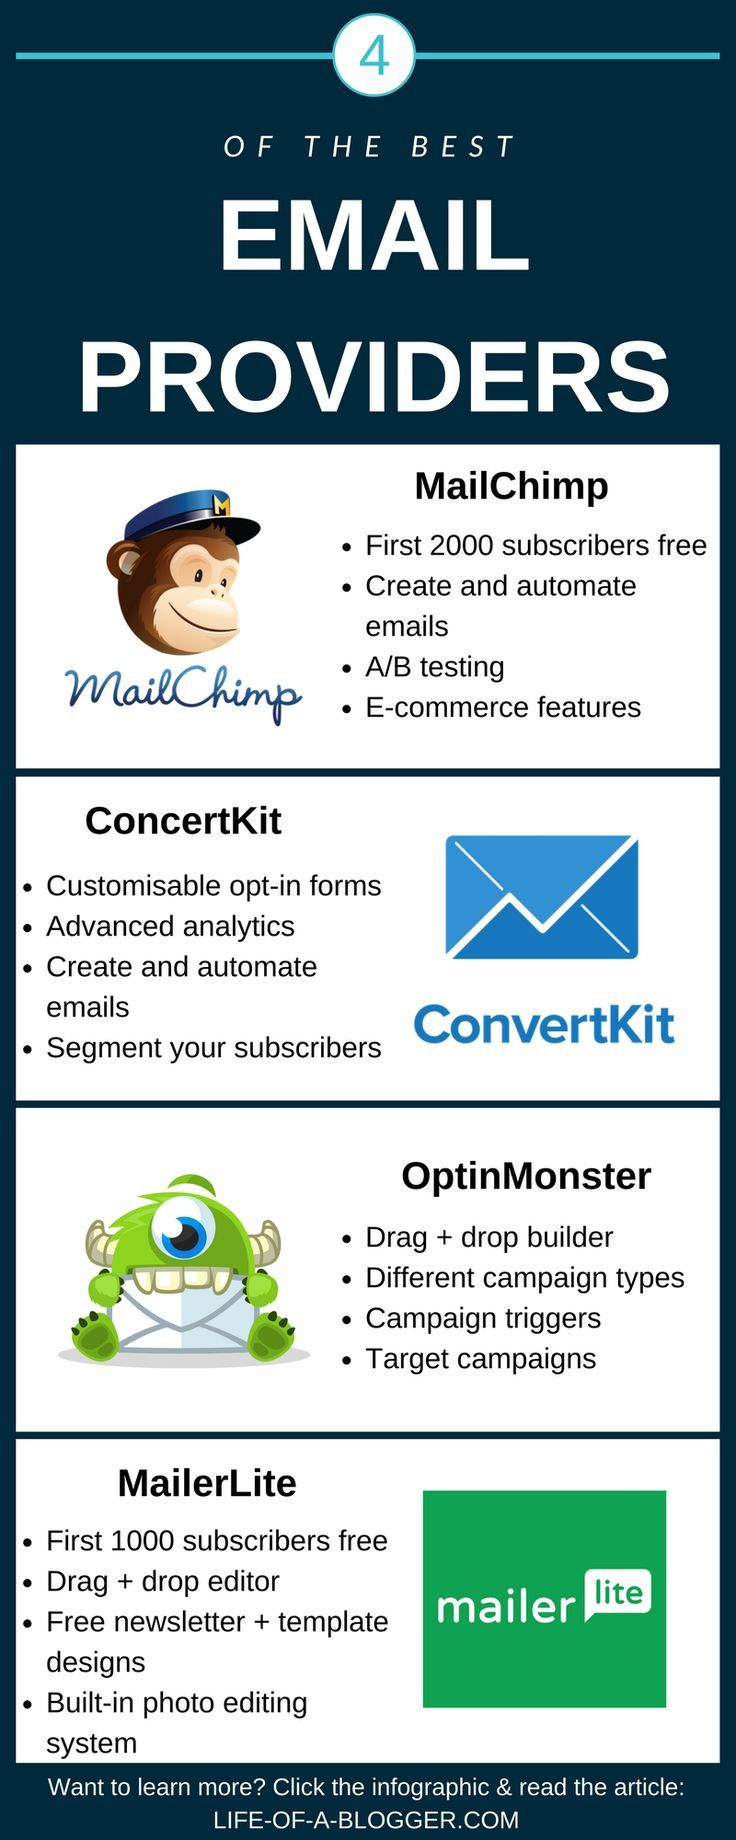 98 Email Marketing Tips Ideas Email Marketing Marketing Tips Email Marketing Strategy